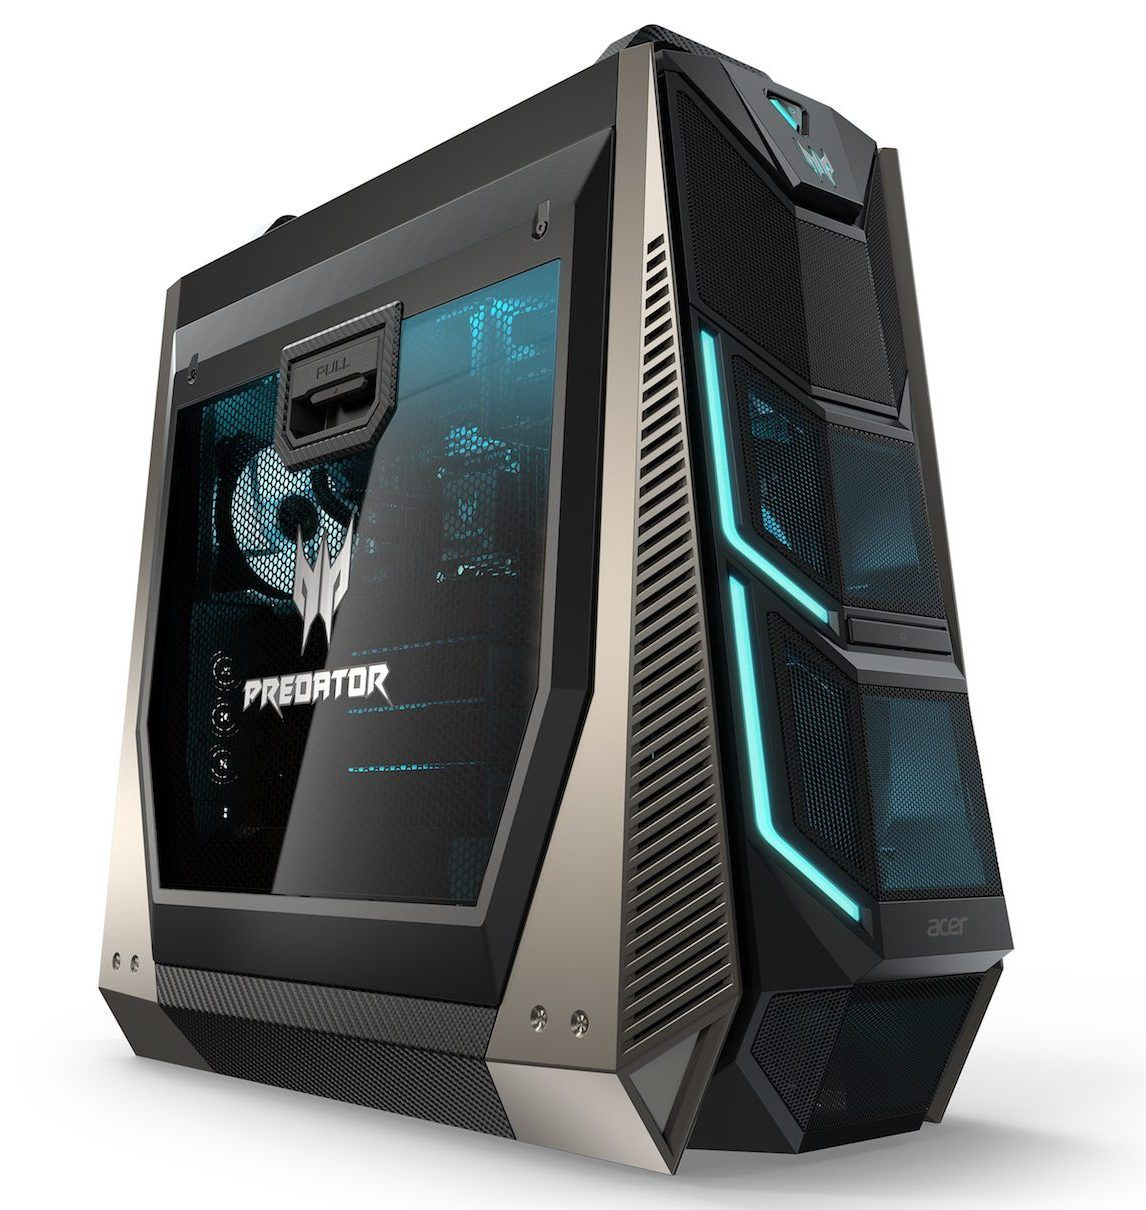 Download Drivers: Acer Predator G7760 AMD Display